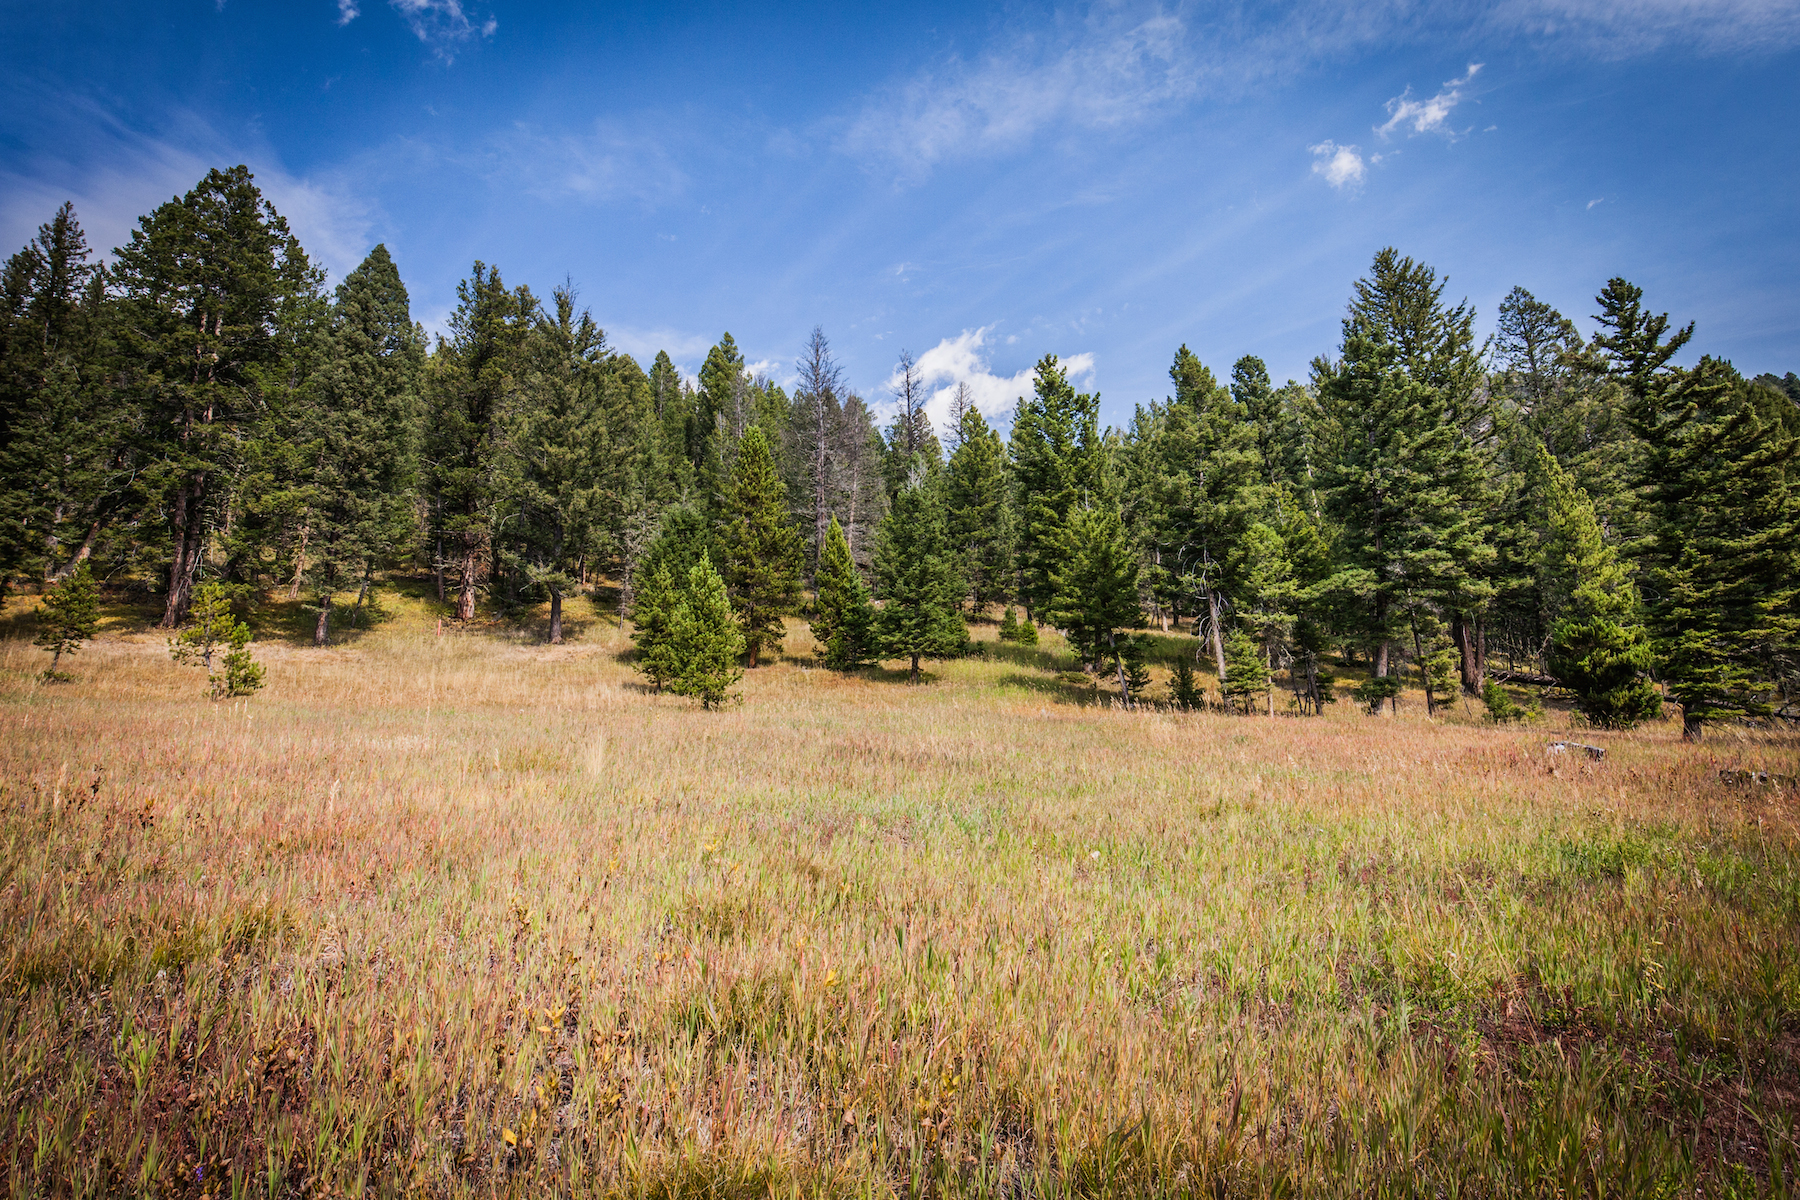 Land for Sale at Upper Chief Joseph Trail 1A-1 Lot 1A-1 Upper Chief Joseph Trail Big Sky, Montana, 59716 United States